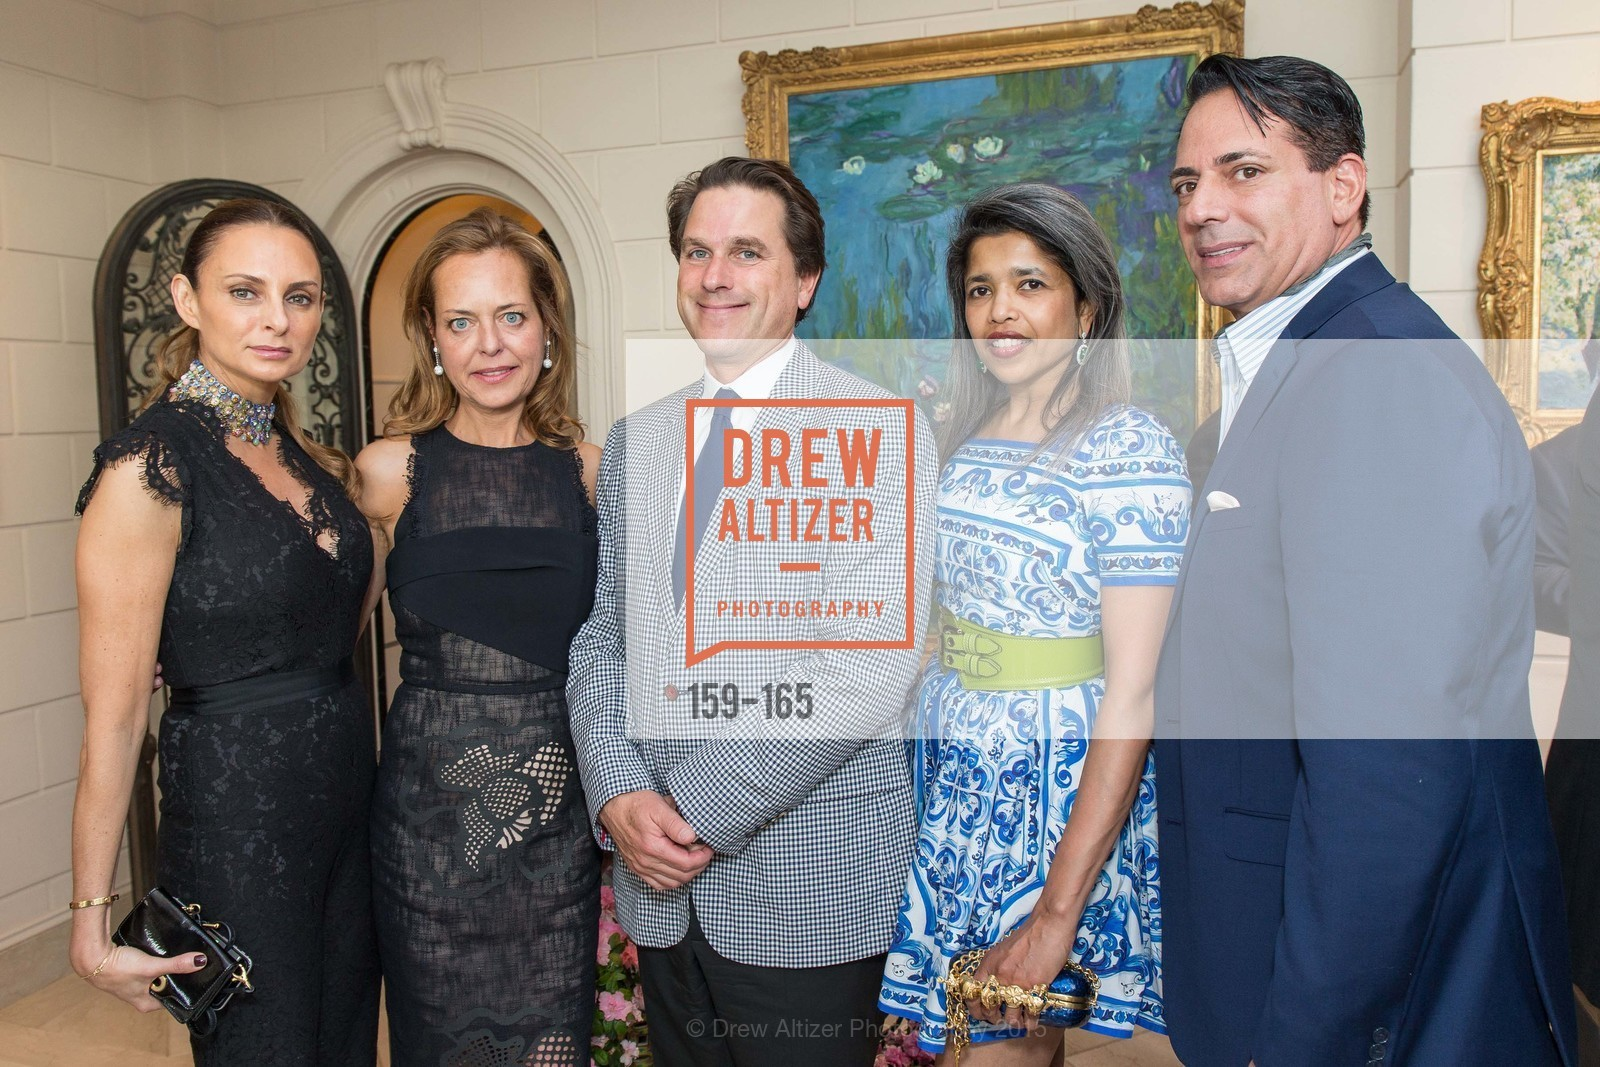 Sabrina Baldieri, Charlot Malin, Gregory Malin, Deepa Pakianathan, Giovanni Mattera, Opera Ball 2015 Benefactor Party Hosted By Diane Wilsey, Private residence, June 16th, 2015,Drew Altizer, Drew Altizer Photography, full-service agency, private events, San Francisco photographer, photographer california